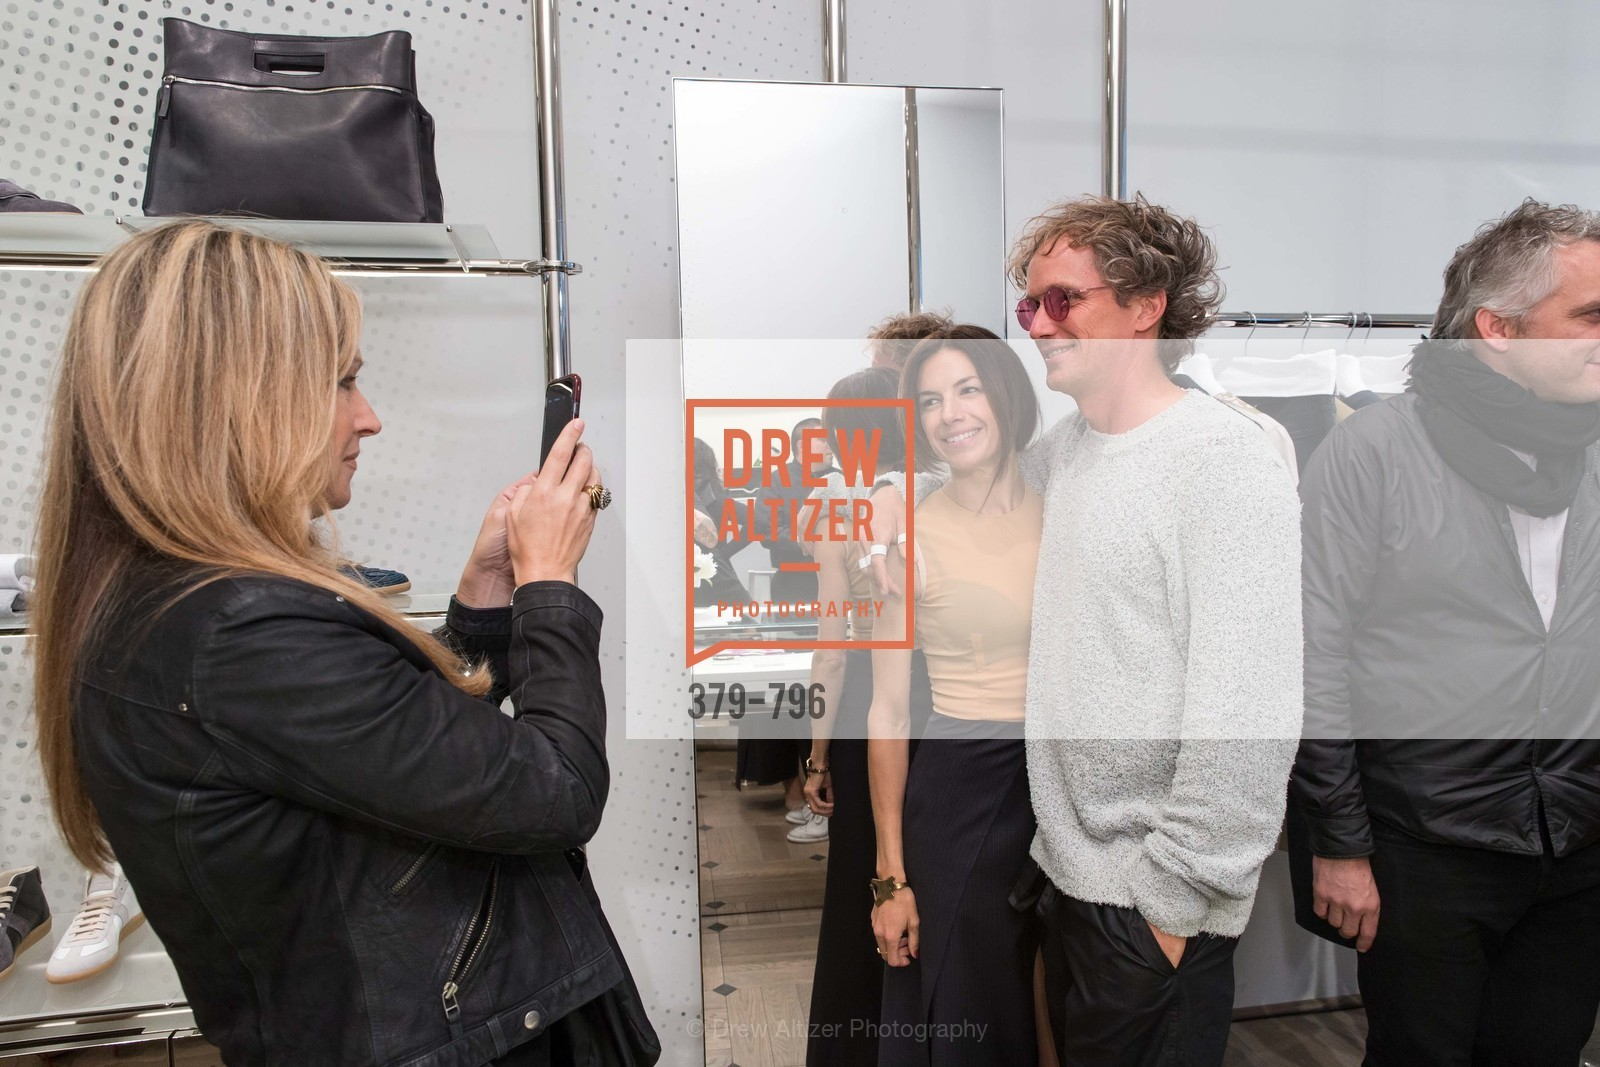 Carolyne Zinko, Sabrina Buell, Yves Behar, MAISON MARGIELA San Francisco Boutique Grand Opening Event, US, April 24th, 2015,Drew Altizer, Drew Altizer Photography, full-service agency, private events, San Francisco photographer, photographer california